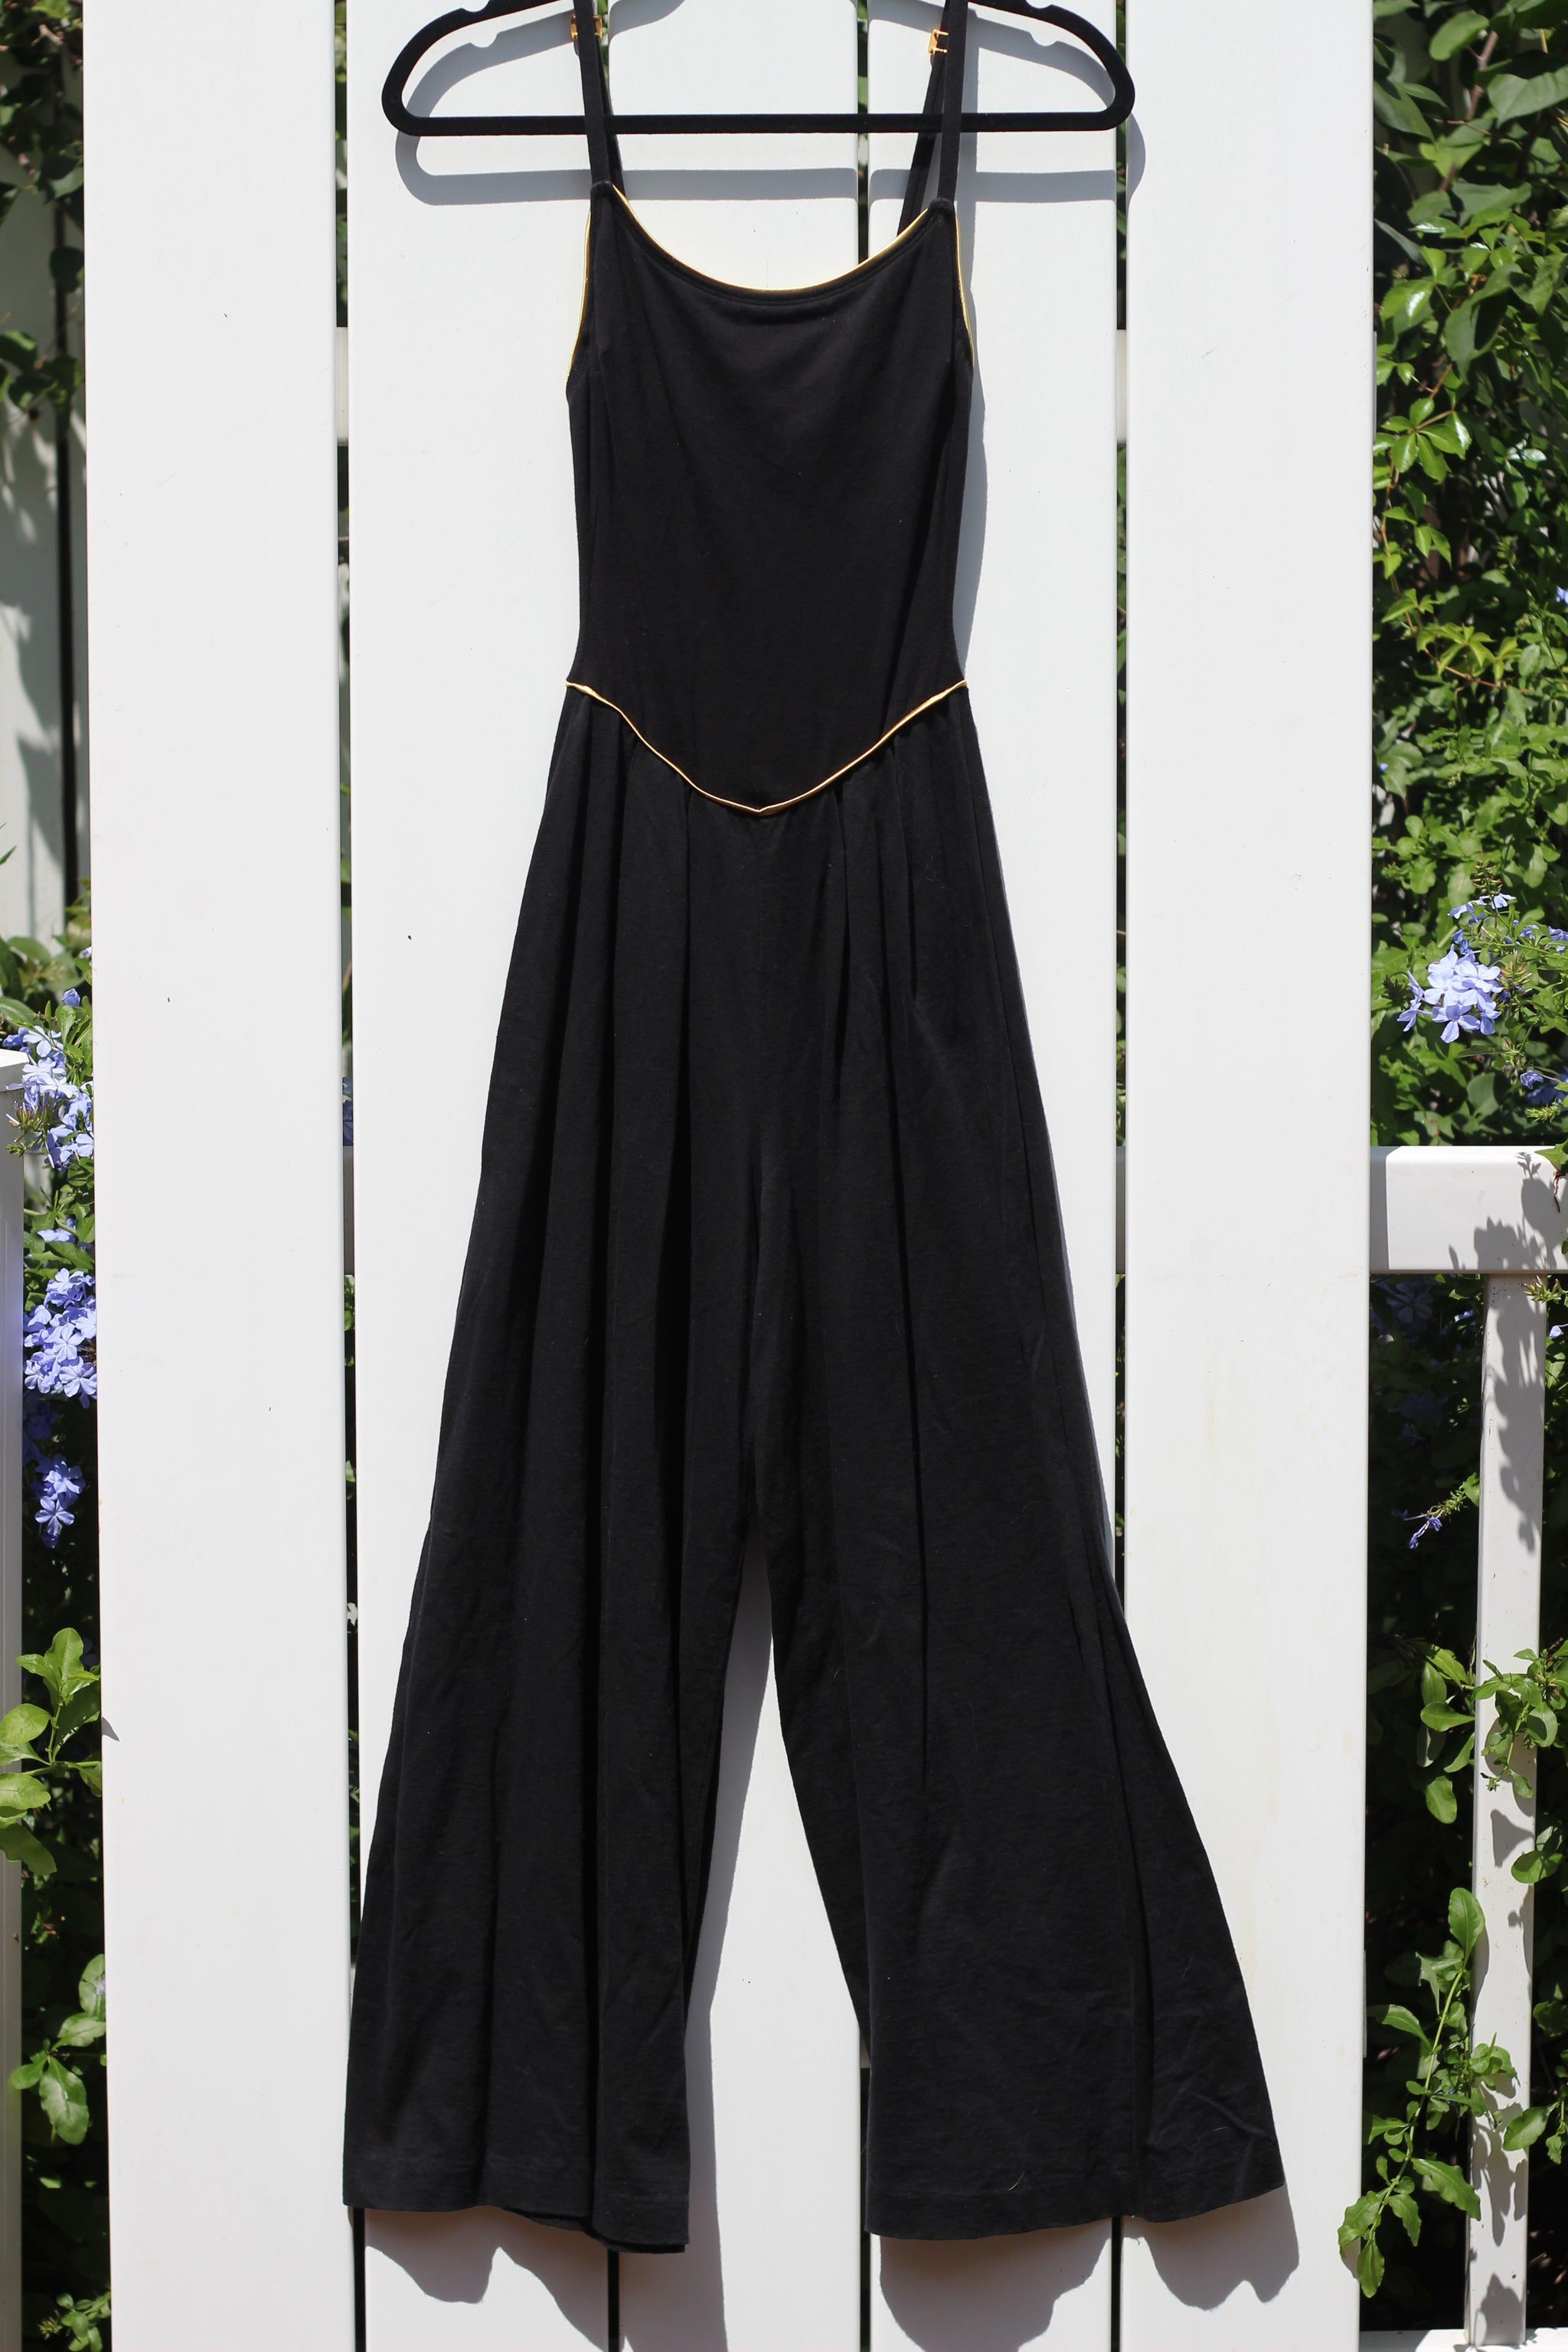 80s Vintage Black & Gold Jumpsuit (XS/S)